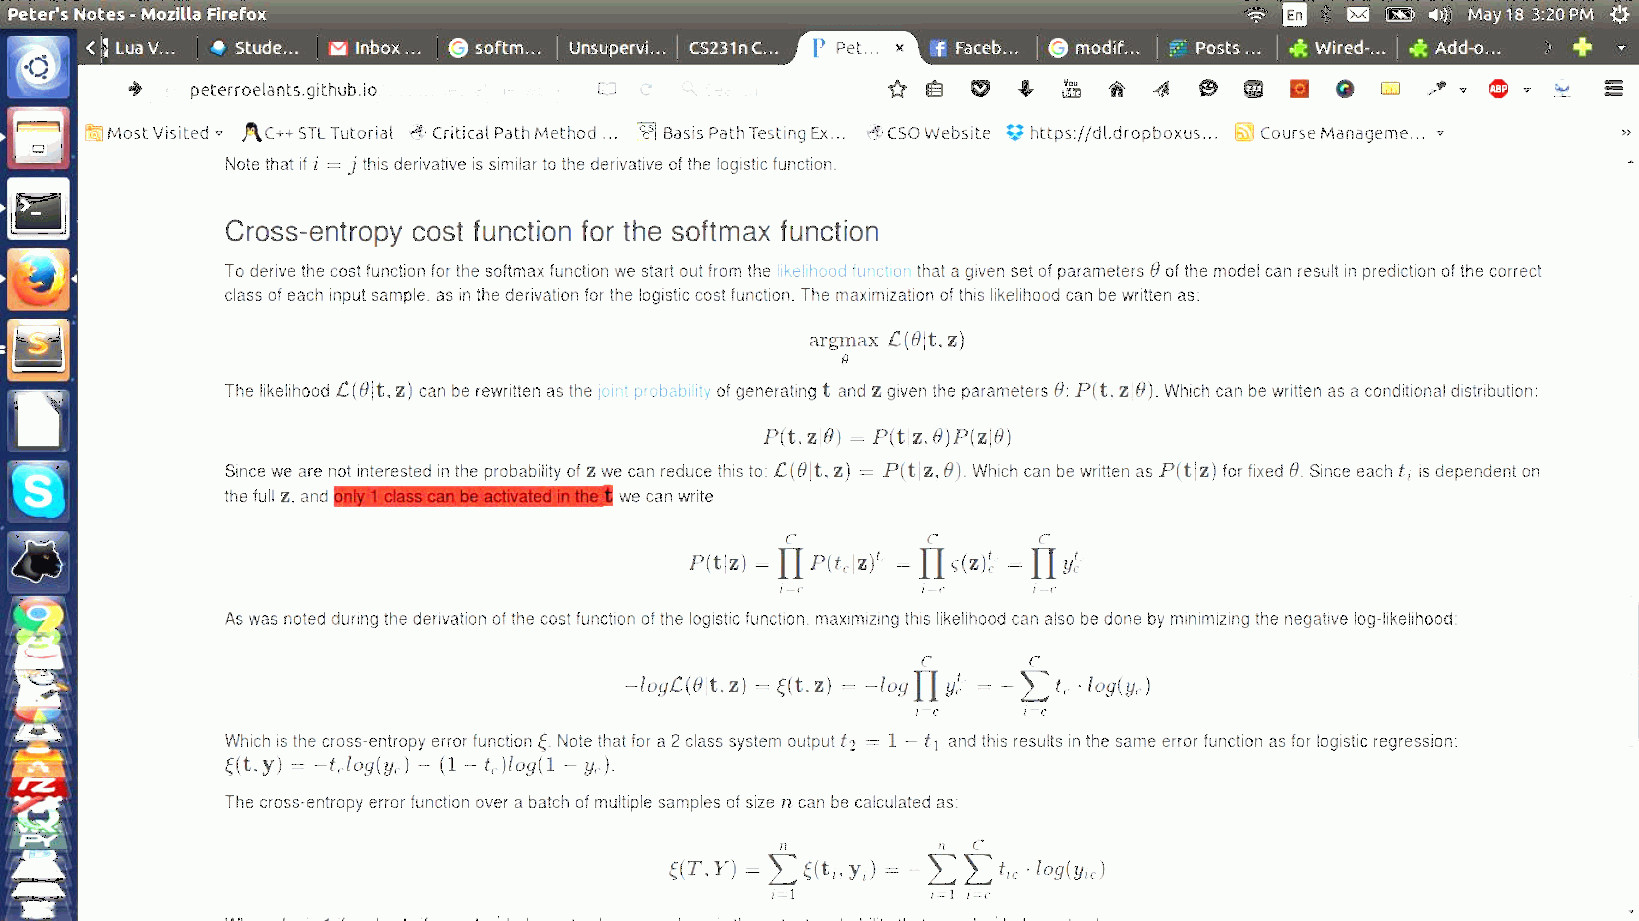 Vectors And Vector Valued Functions: Loss Functions That Act On Real Valued Output Vectors And Not Just On Hot Vec